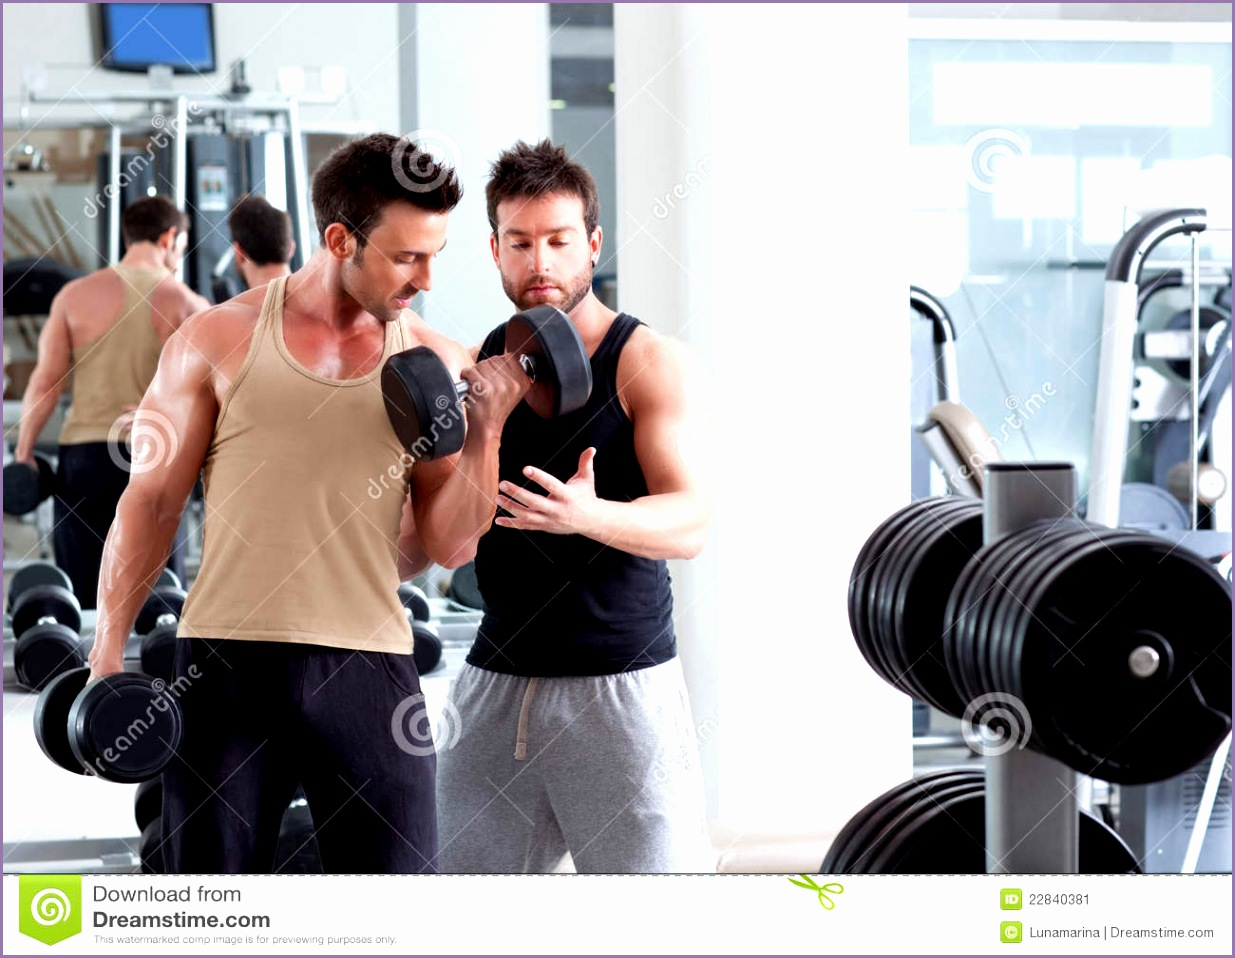 stock image gym personal trainer man weight training image